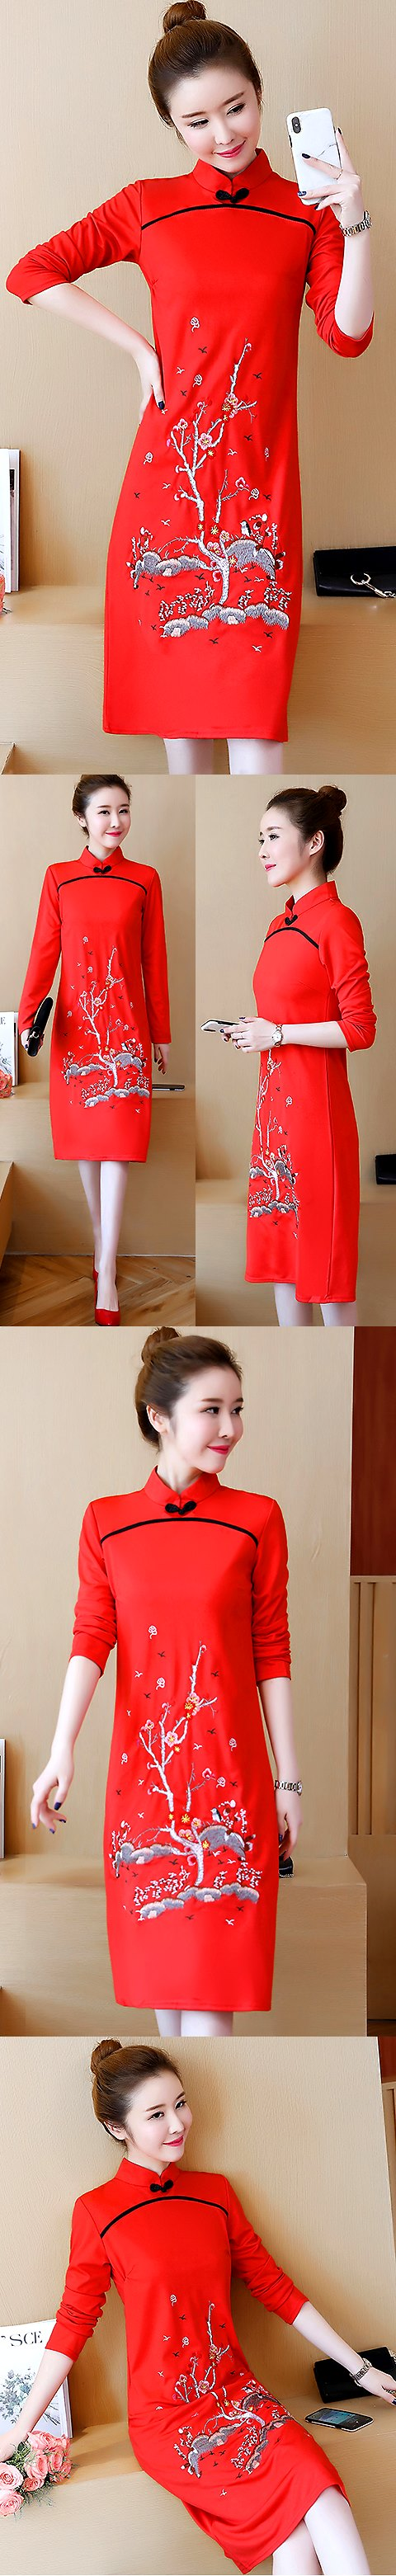 Long-sleeve Plum Blossom Embroidery Cheongsam (RM)